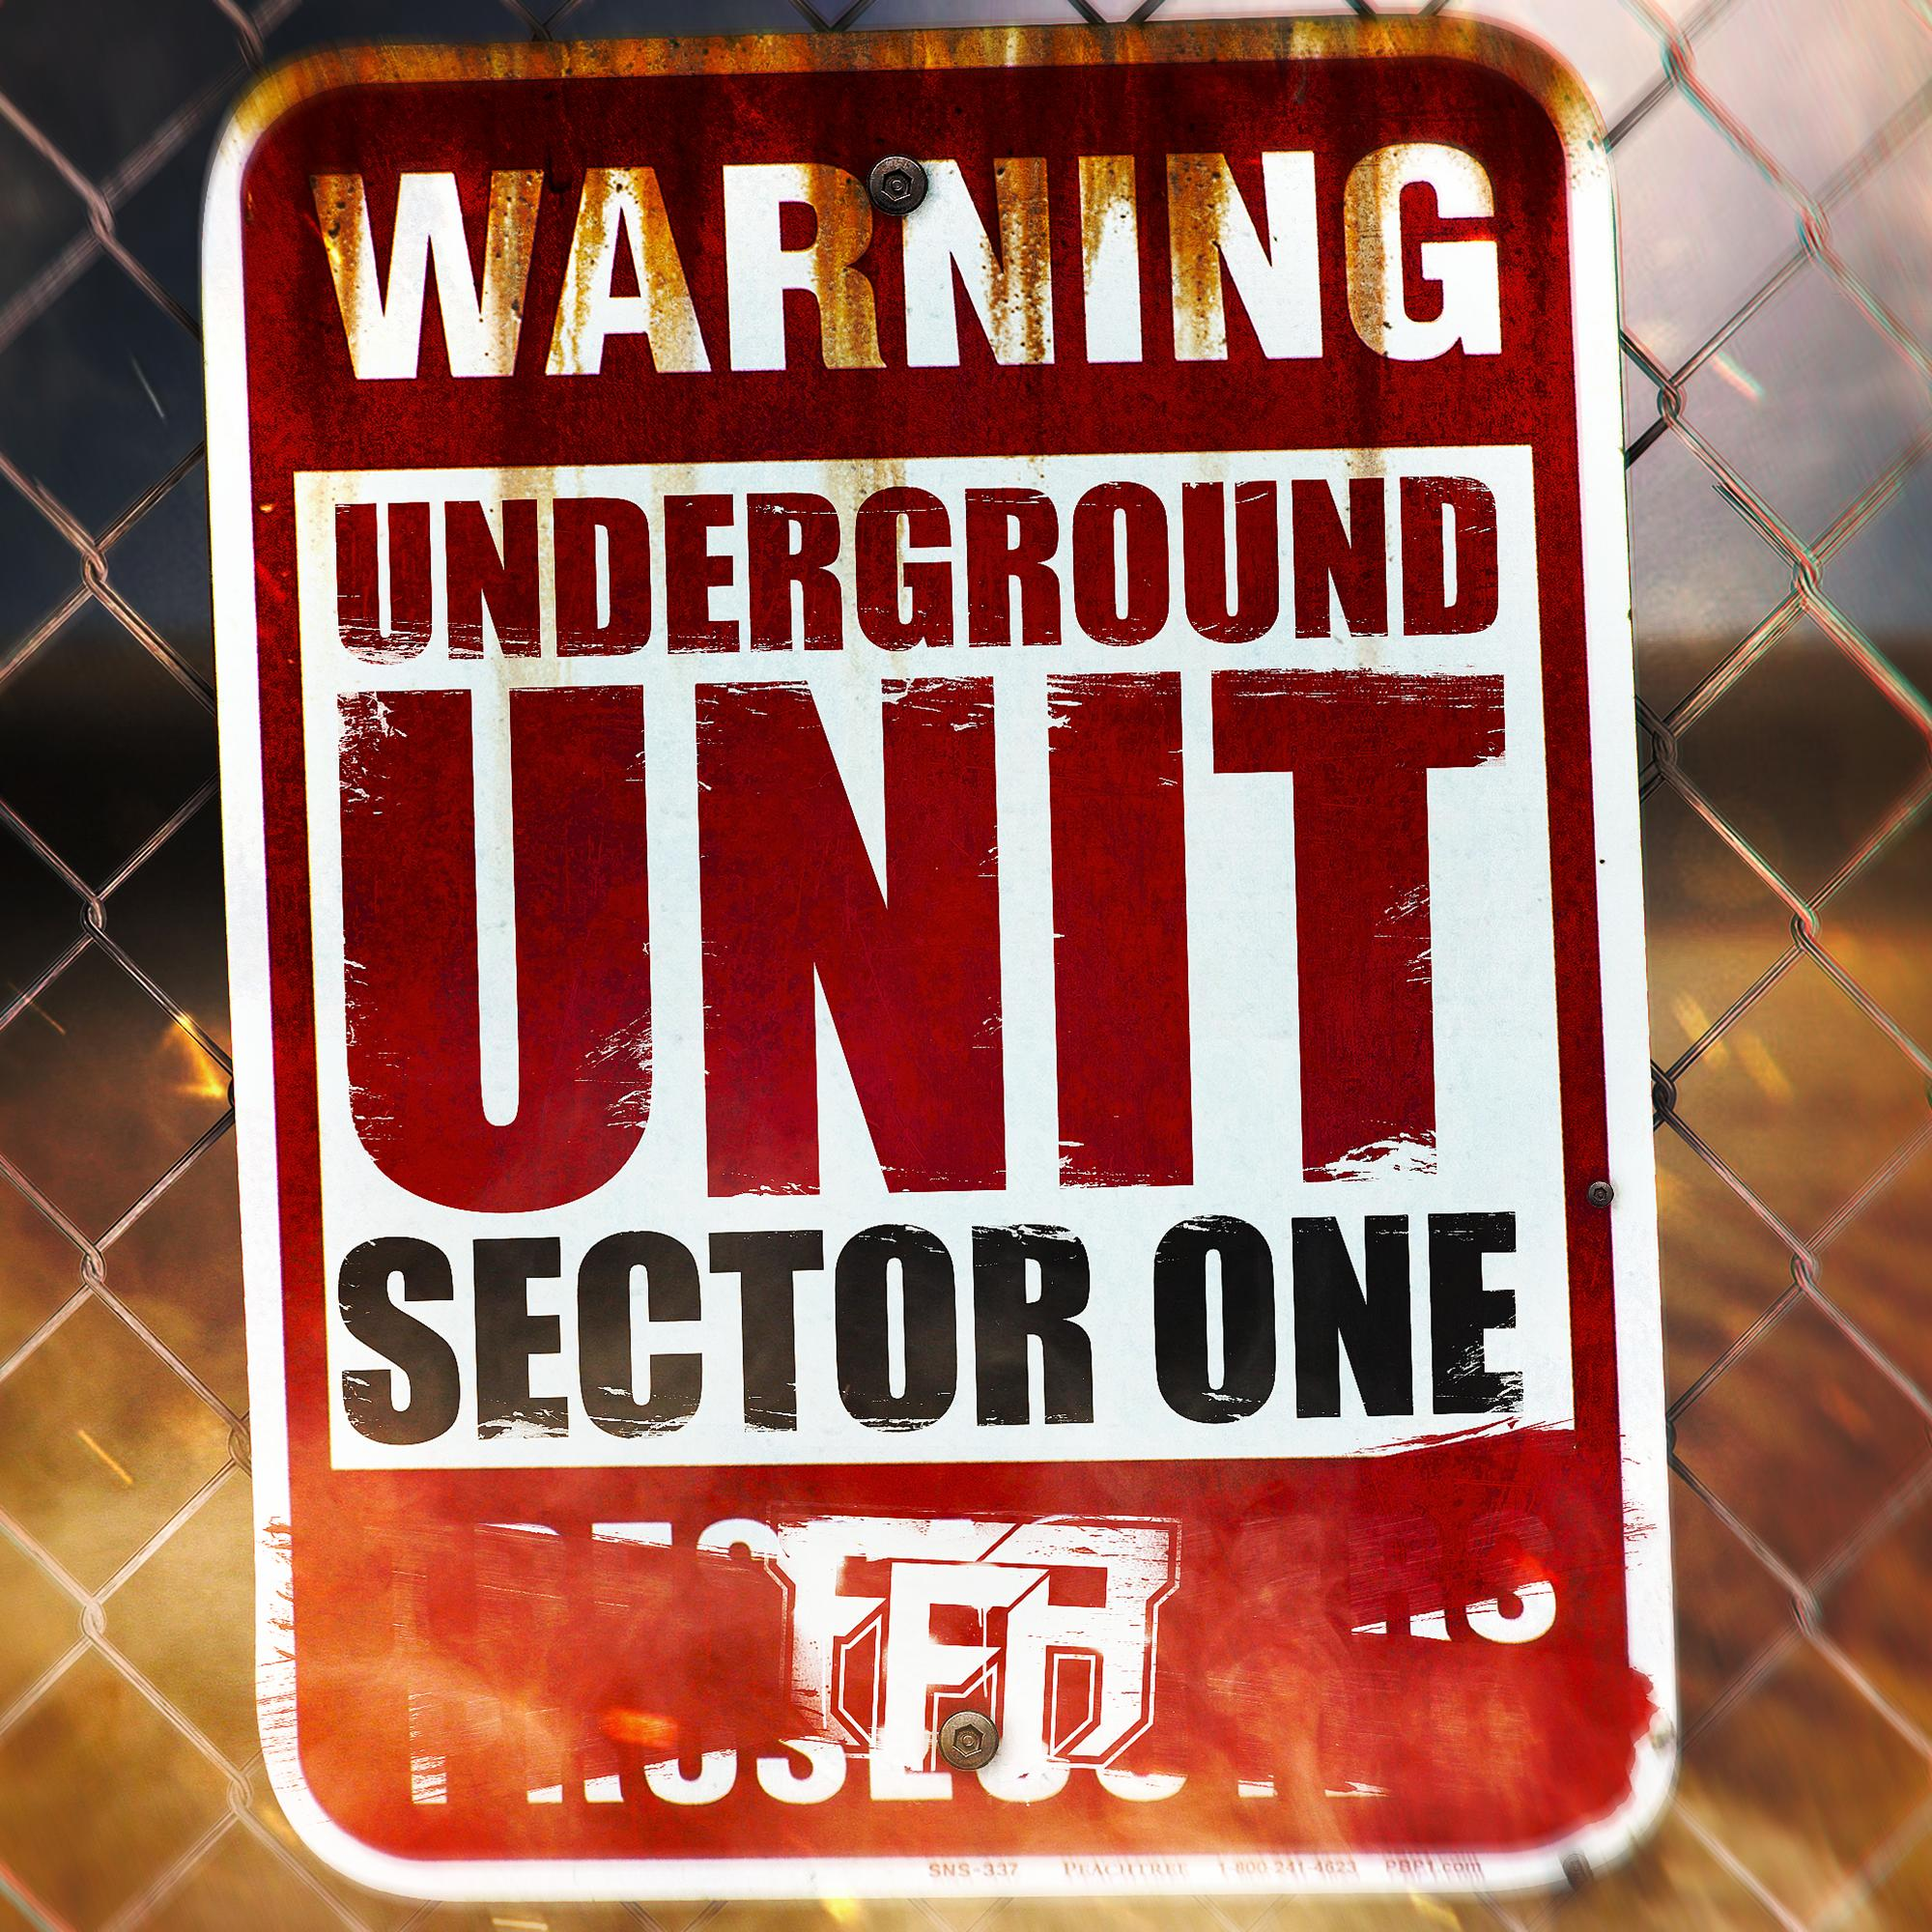 Underground Unit_ Sector 1 _ART_(exorcisim).jpg